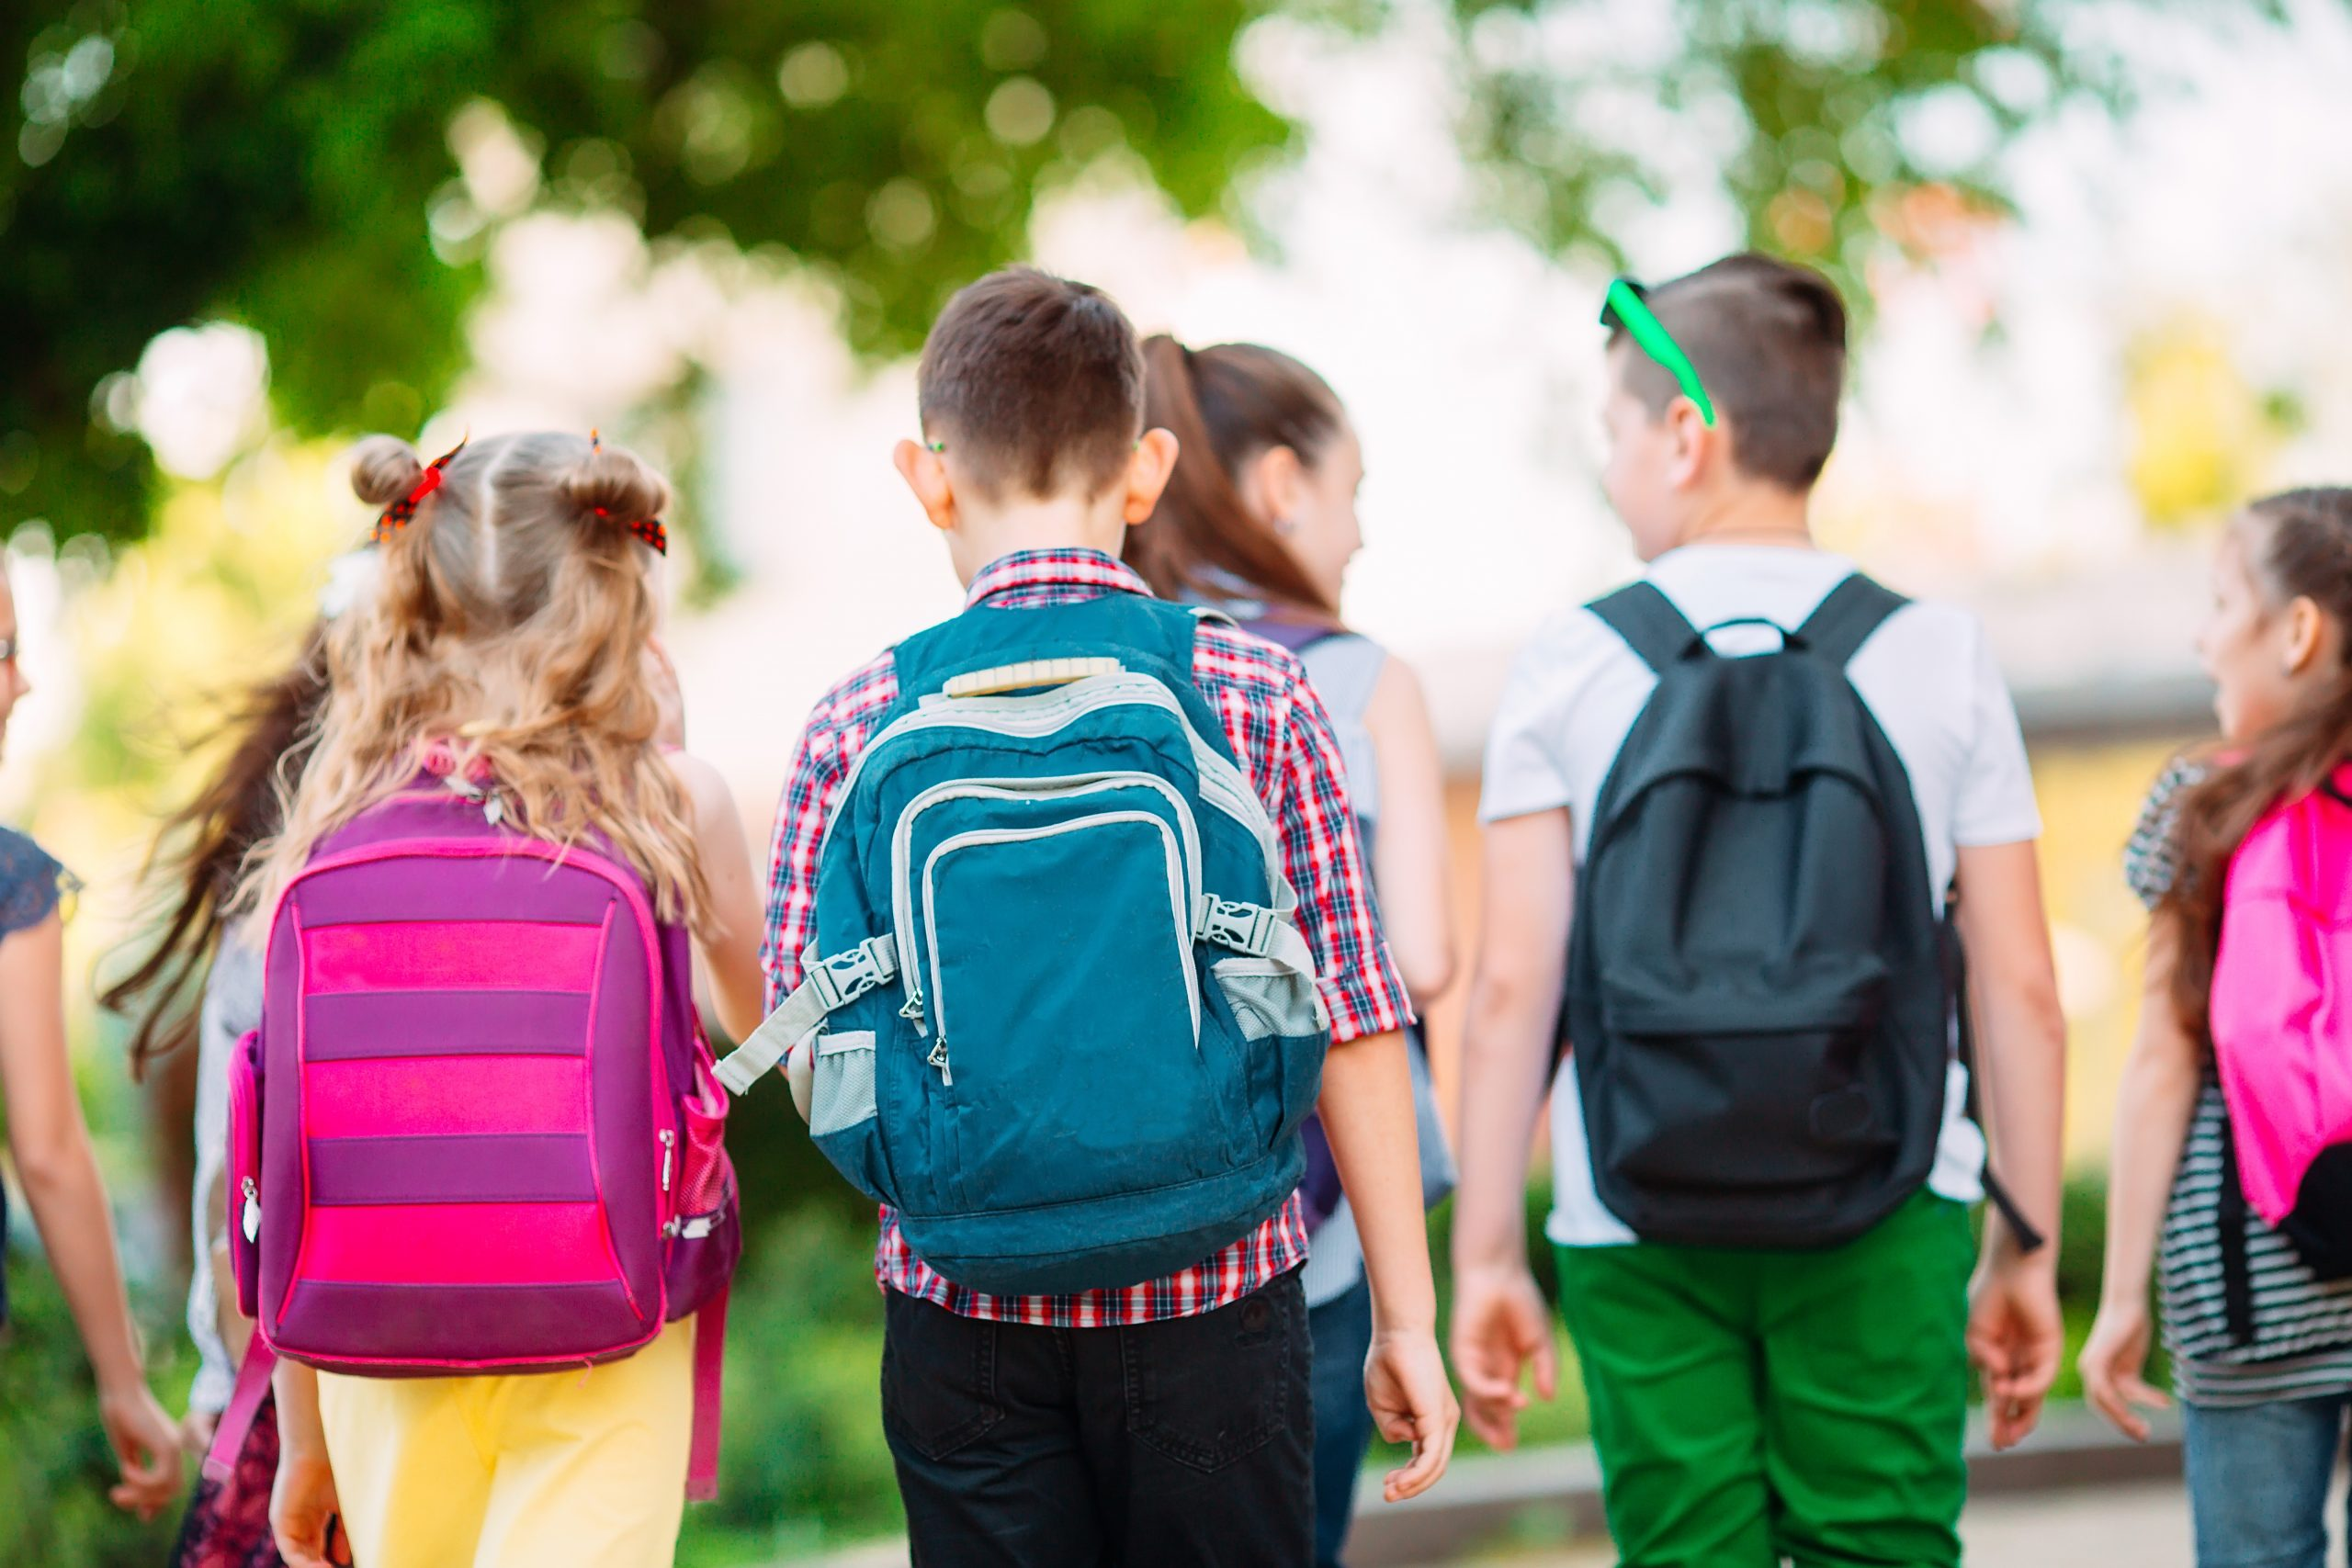 Group of kids going to school together